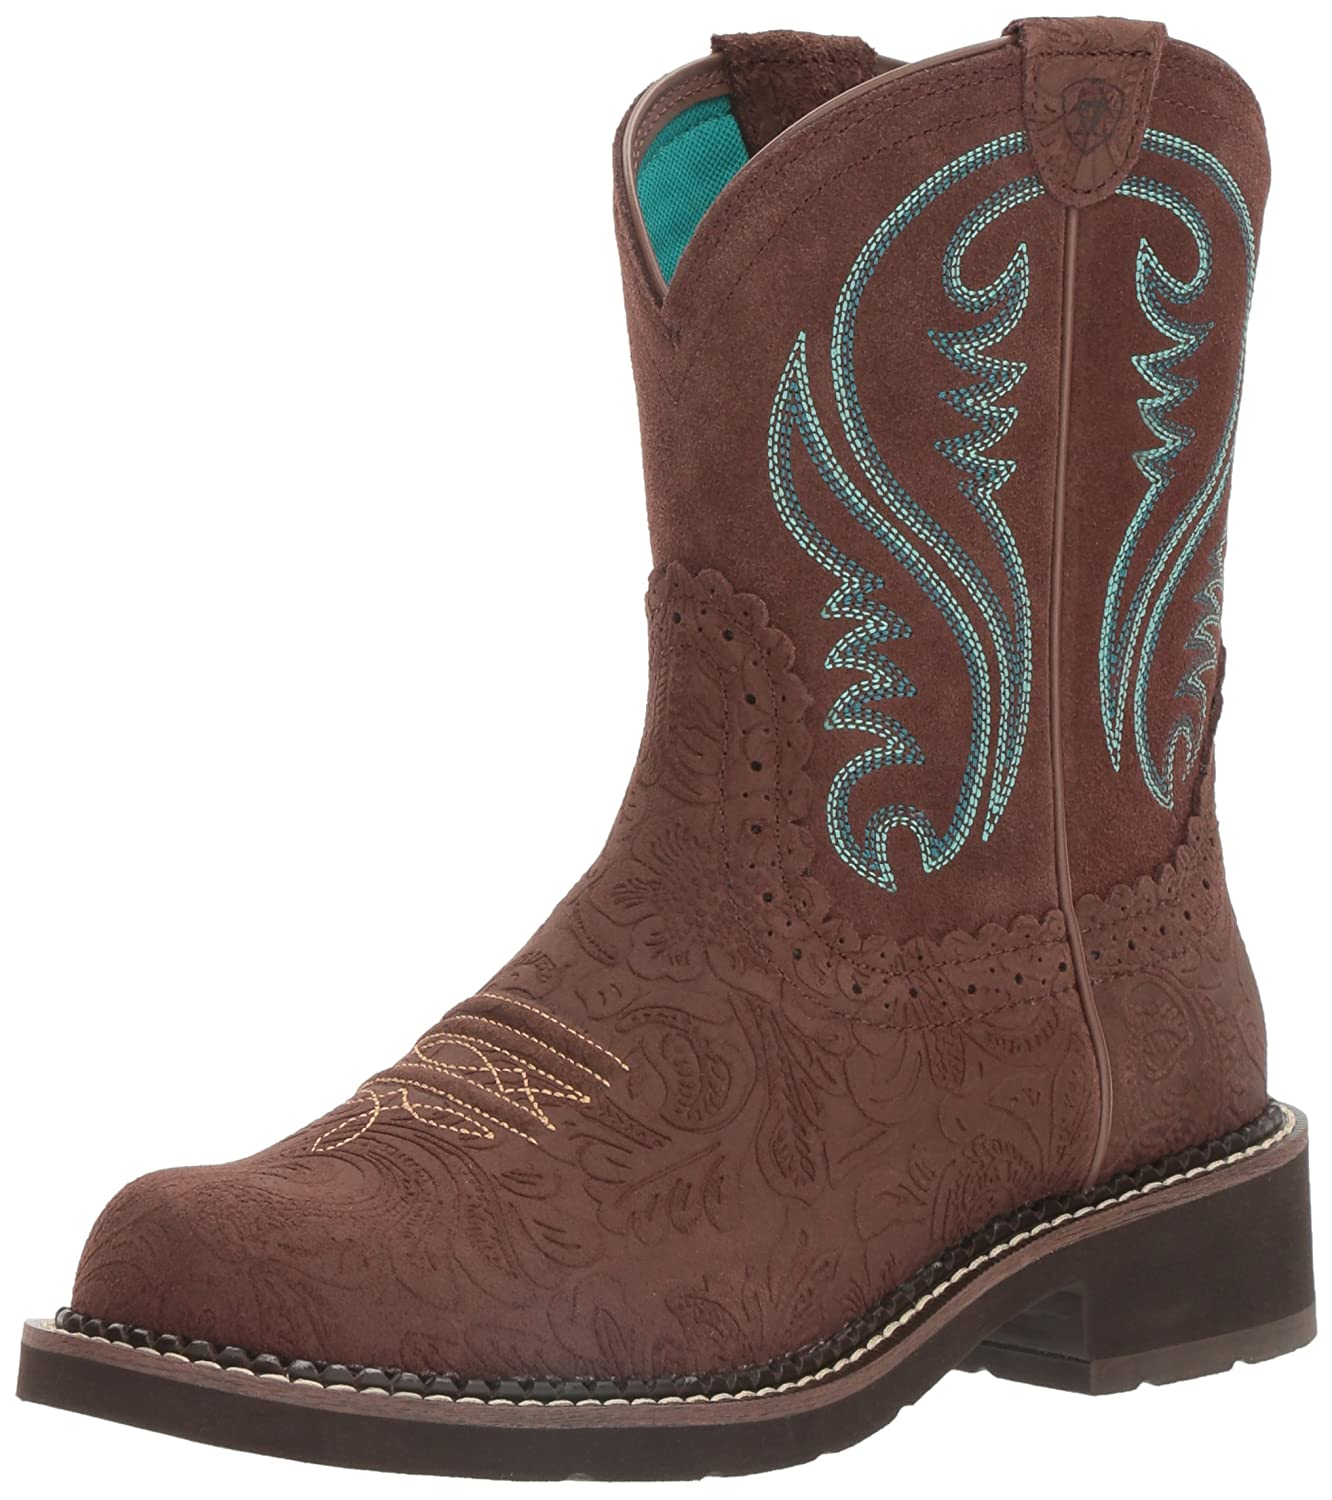 Ariat レディース Rowan Harness B01MTEJMI9 9.5 B(M) US|Naturally Distressed Brown Naturally Distressed Brown 9.5 B(M) US